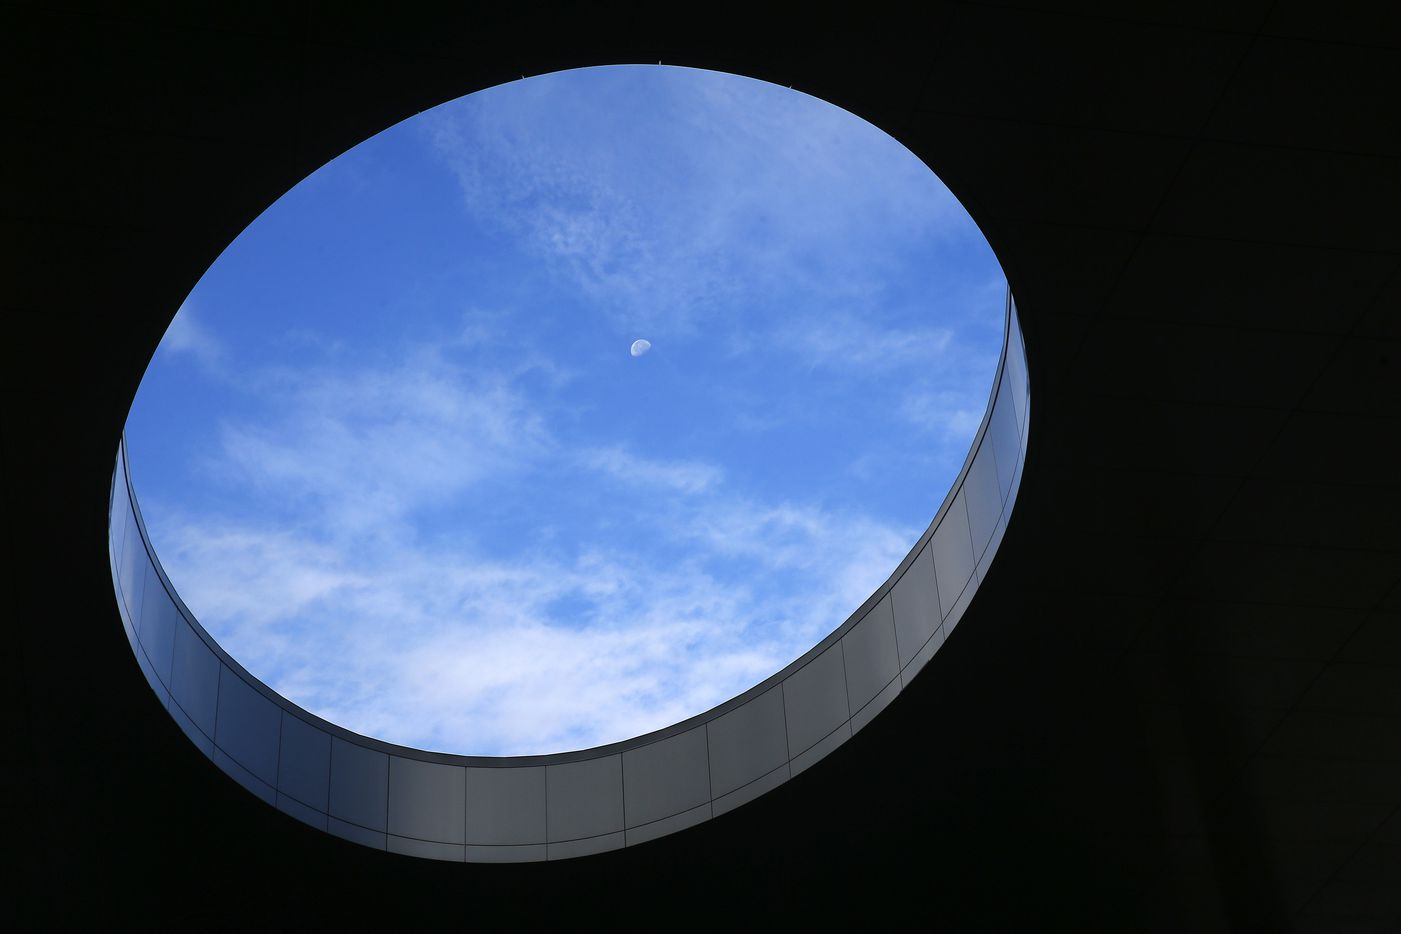 The moon is seen through the oculus.